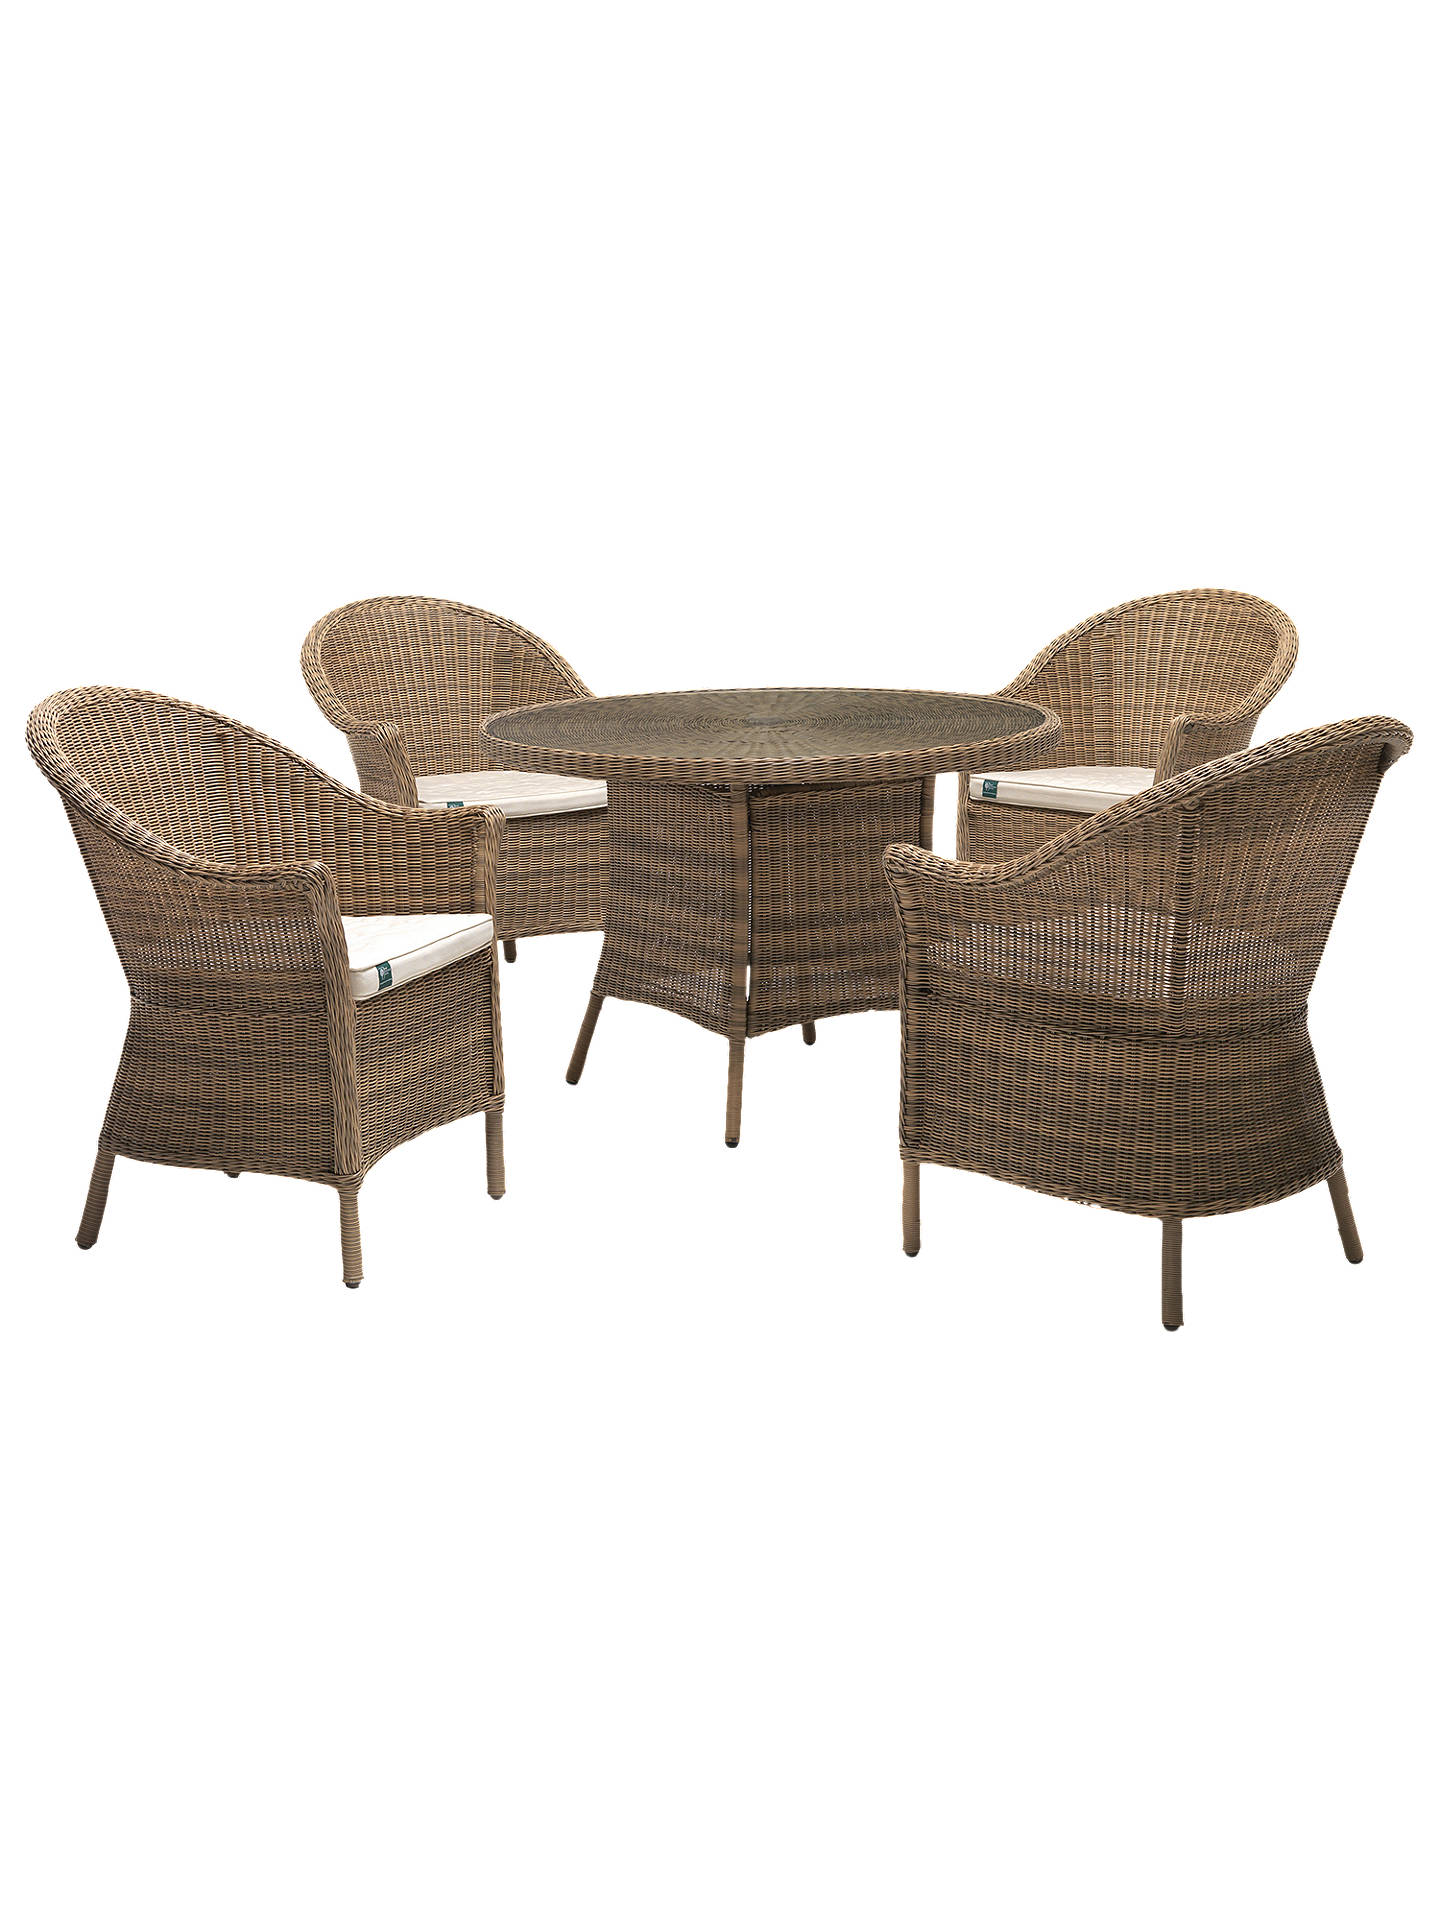 4ac0f002d7e8 Buy KETTLER RHS Harlow Carr 4 Seater Garden Table and Chairs Set, Natural  Online at ...